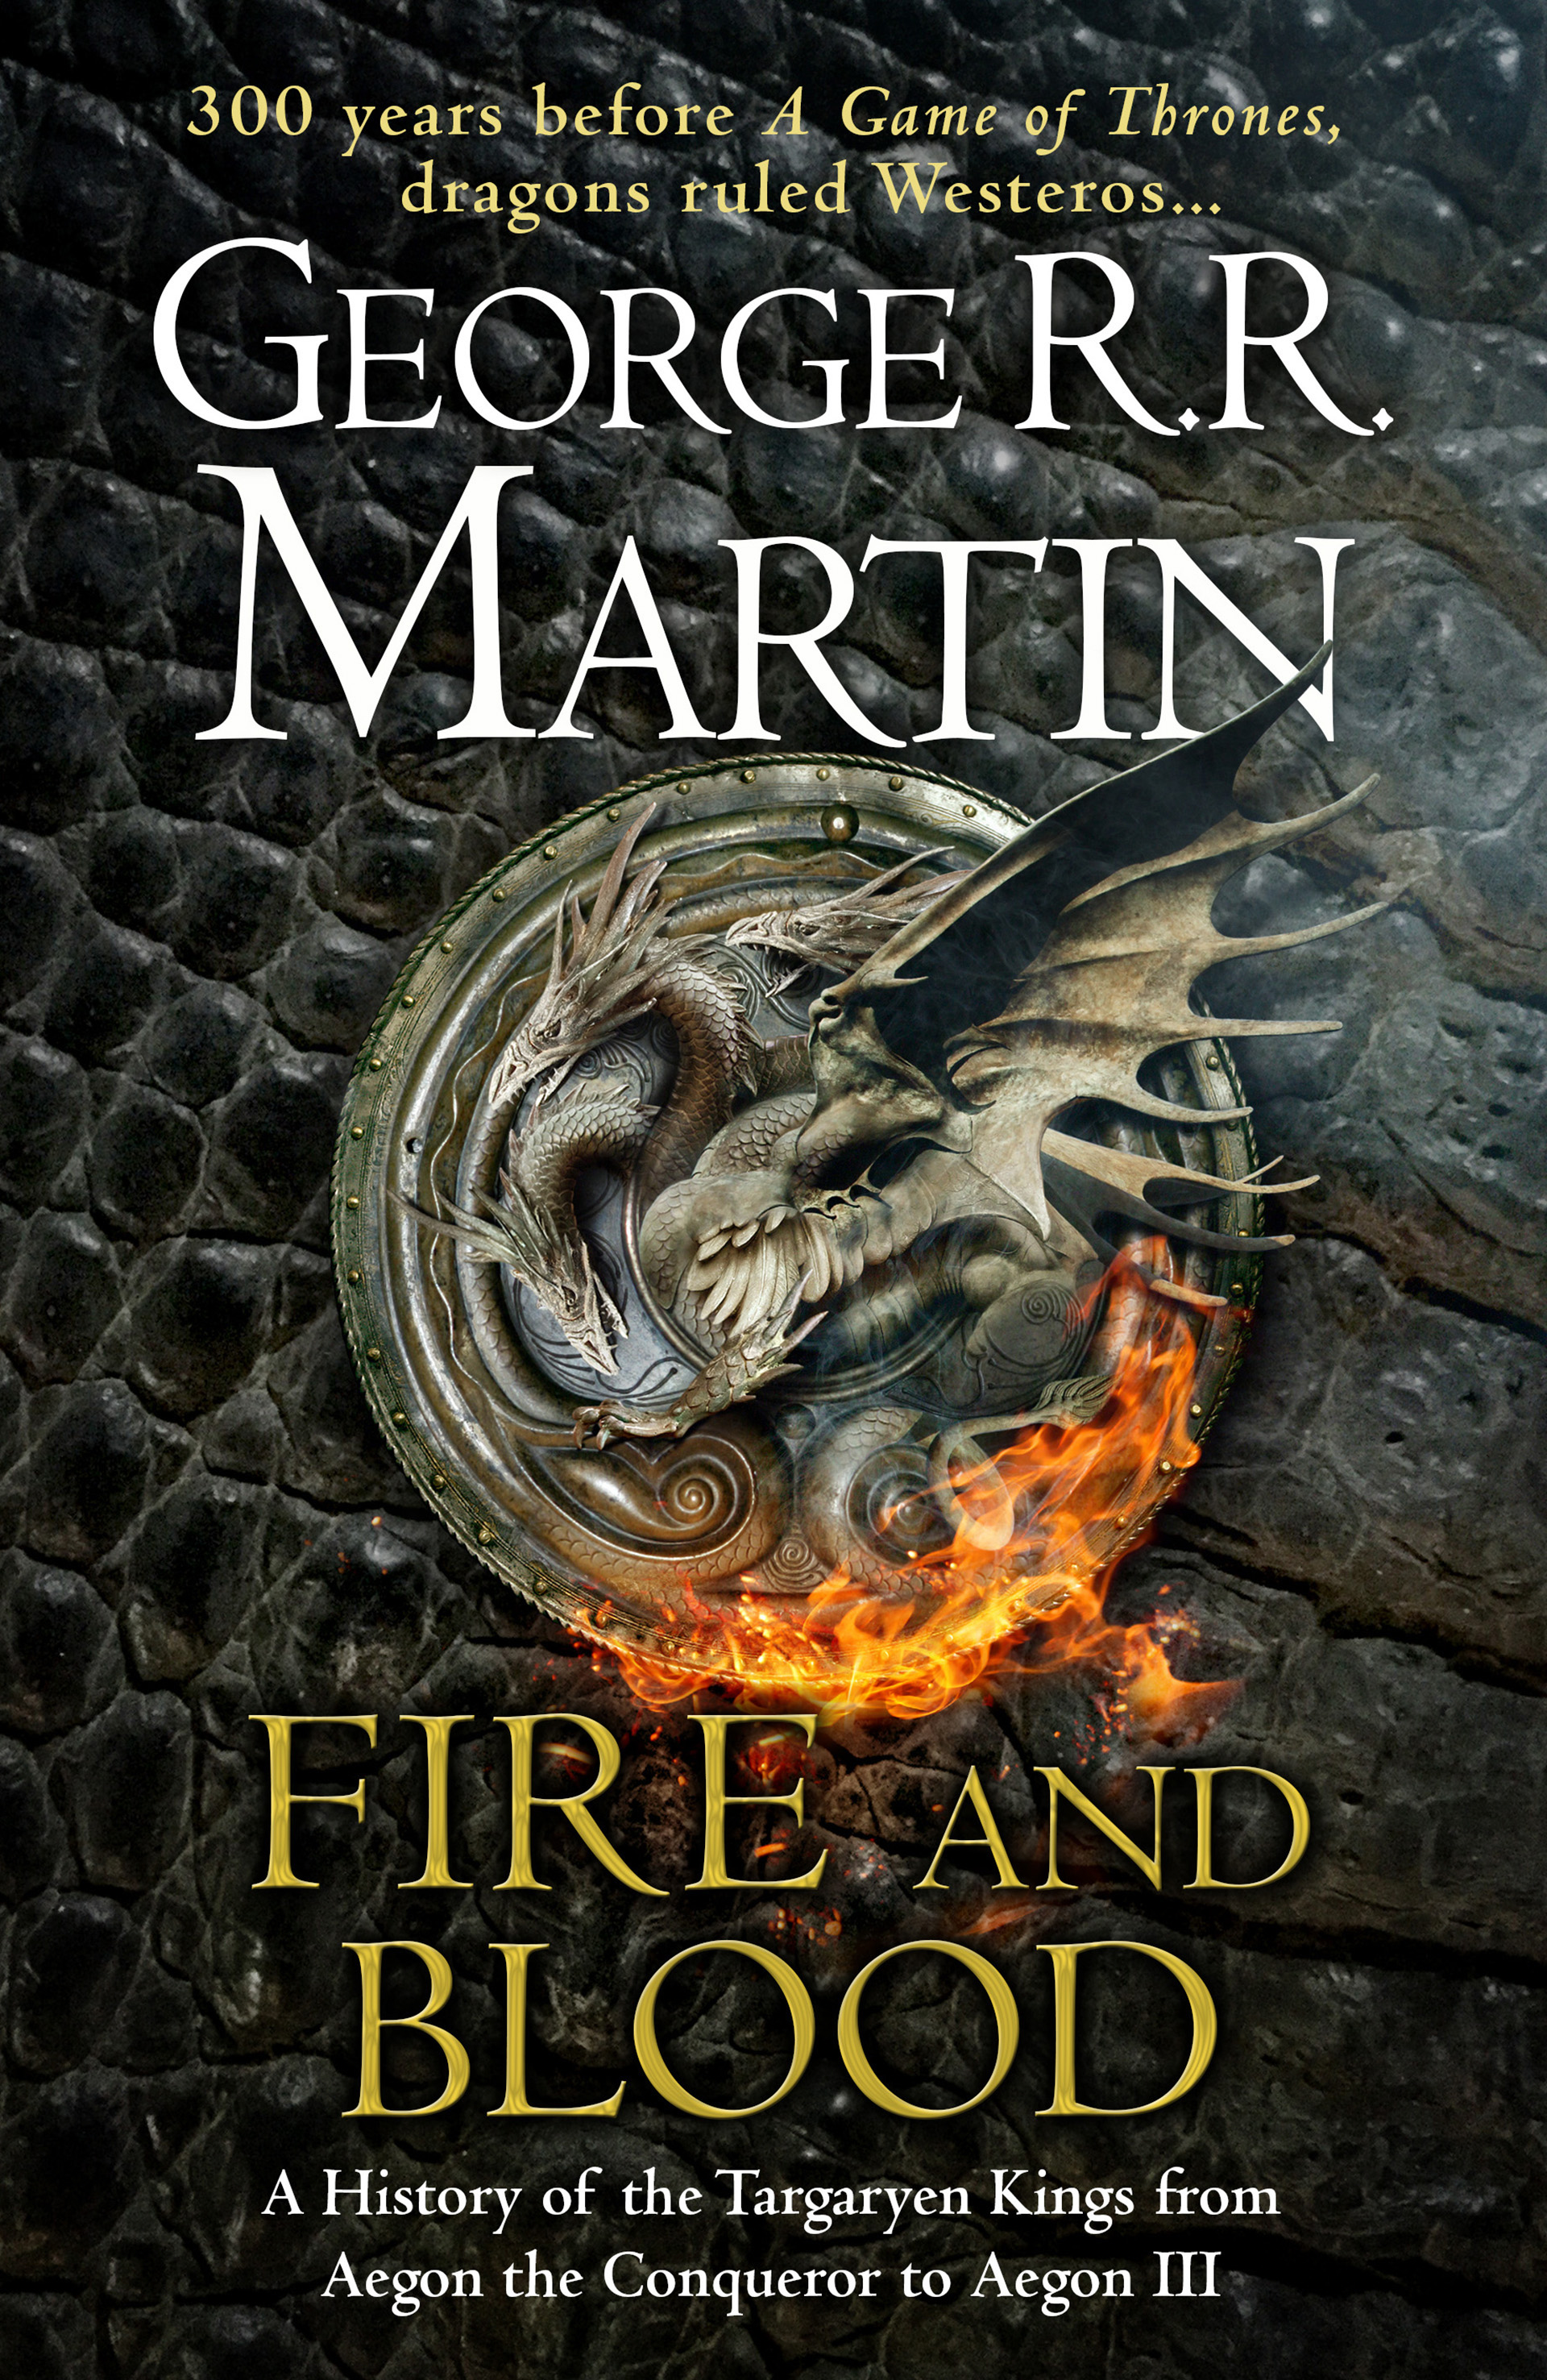 Fire and Blood by George R.R. Martin, ISBN: 9780008307738